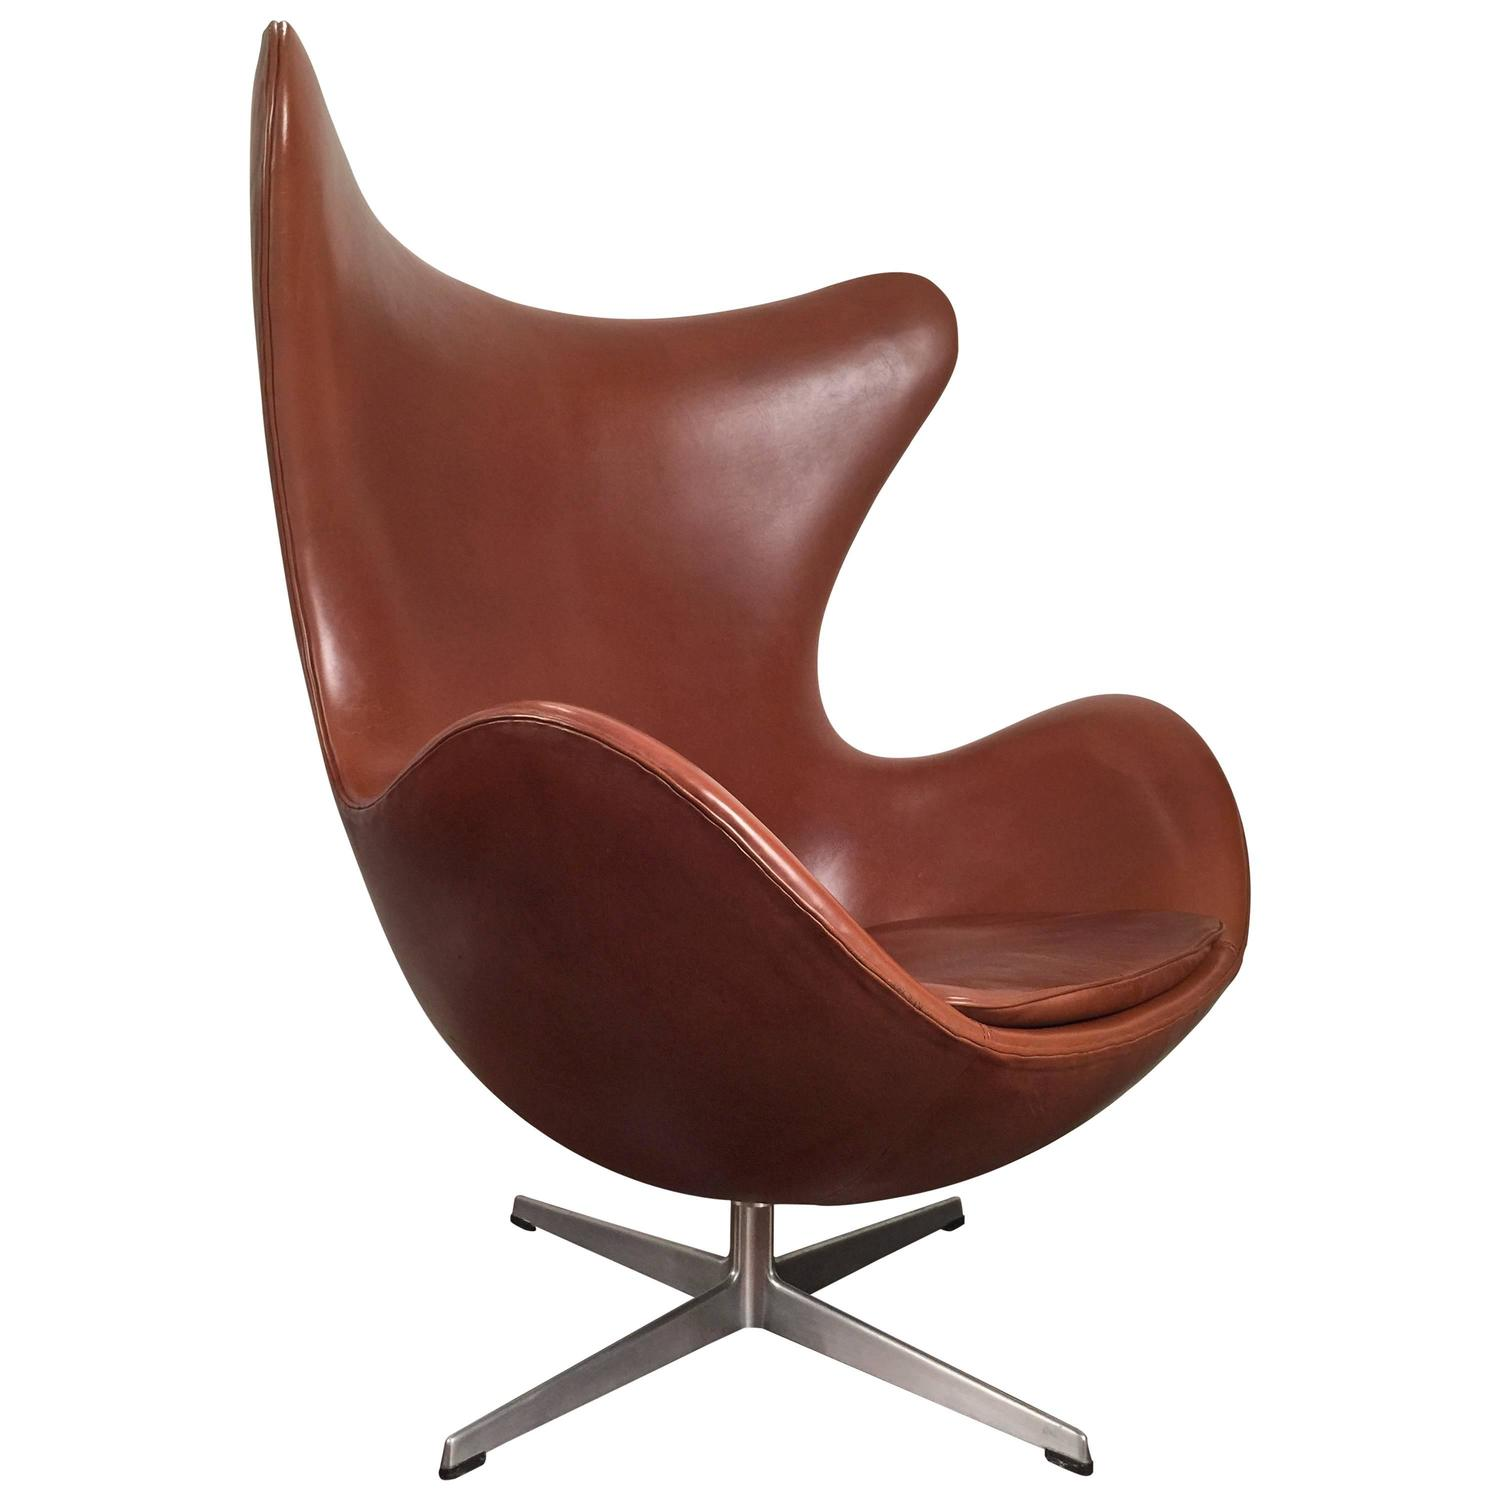 early arne jacobsen egg chair in original brown leather by fritz hansen for sale at 1stdibs. Black Bedroom Furniture Sets. Home Design Ideas